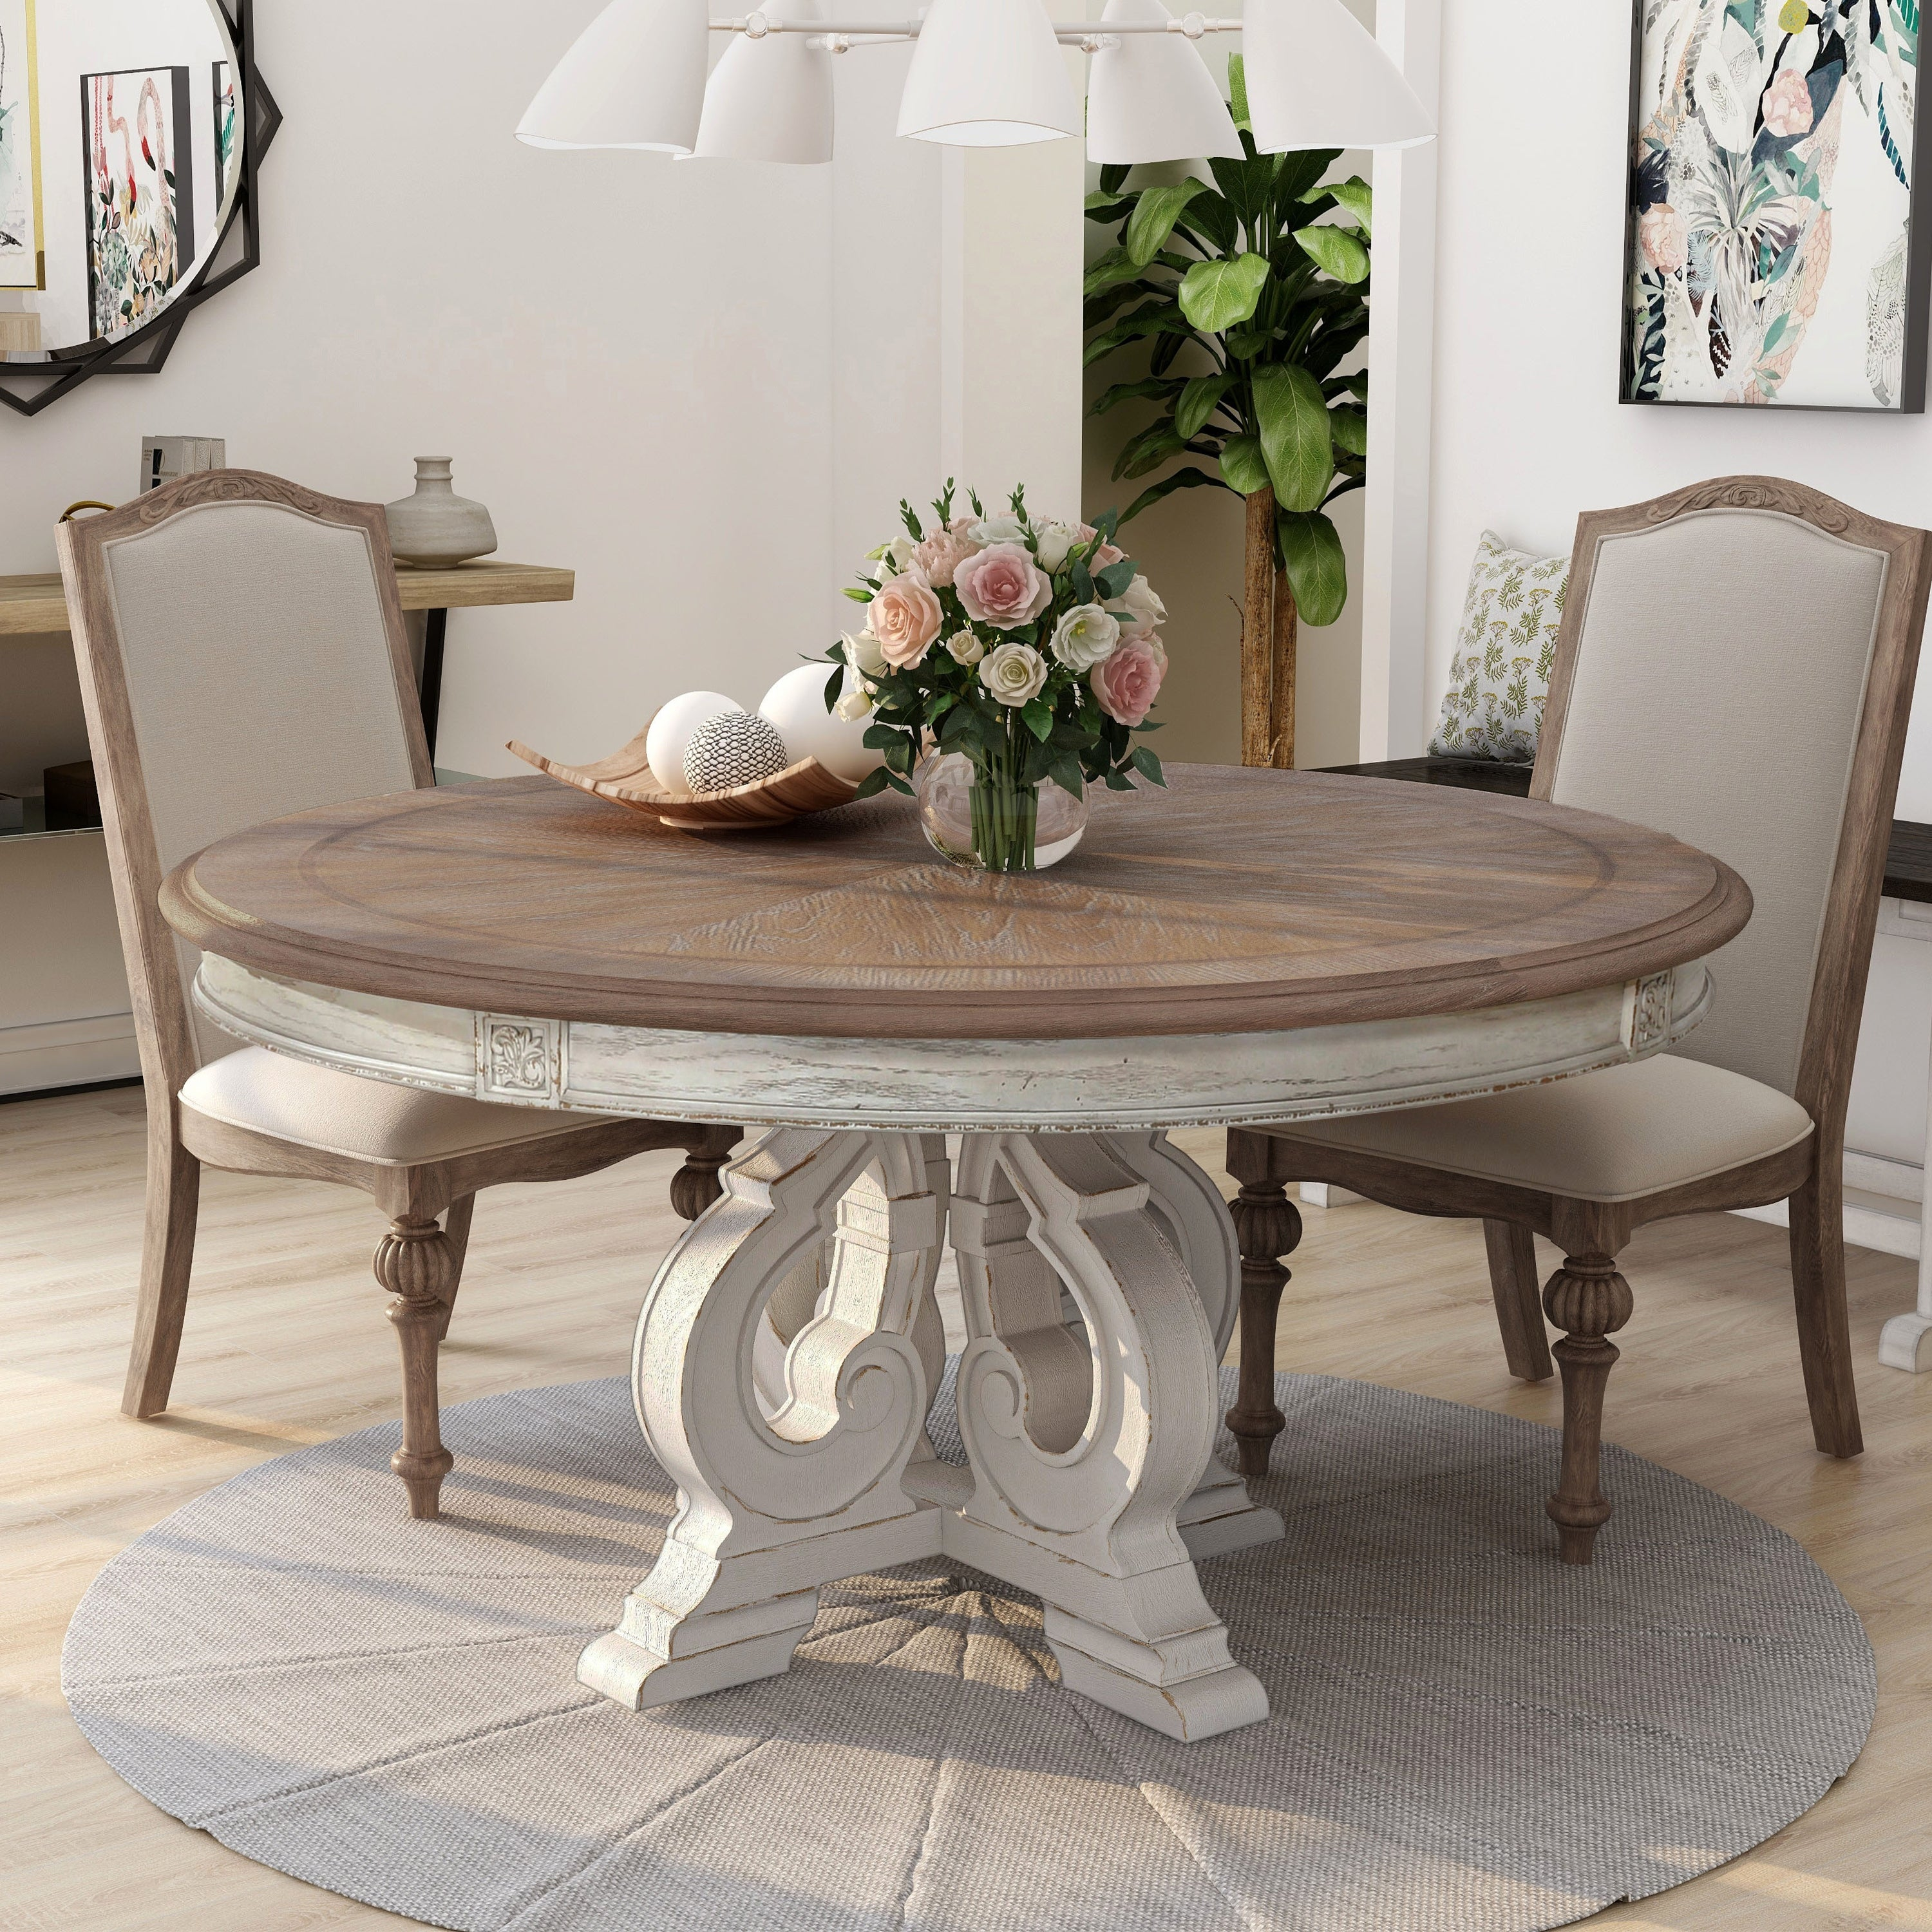 The Gray Barn Caelum 60 Inch Antique White Round Dining Table On Sale Overstock 28978096